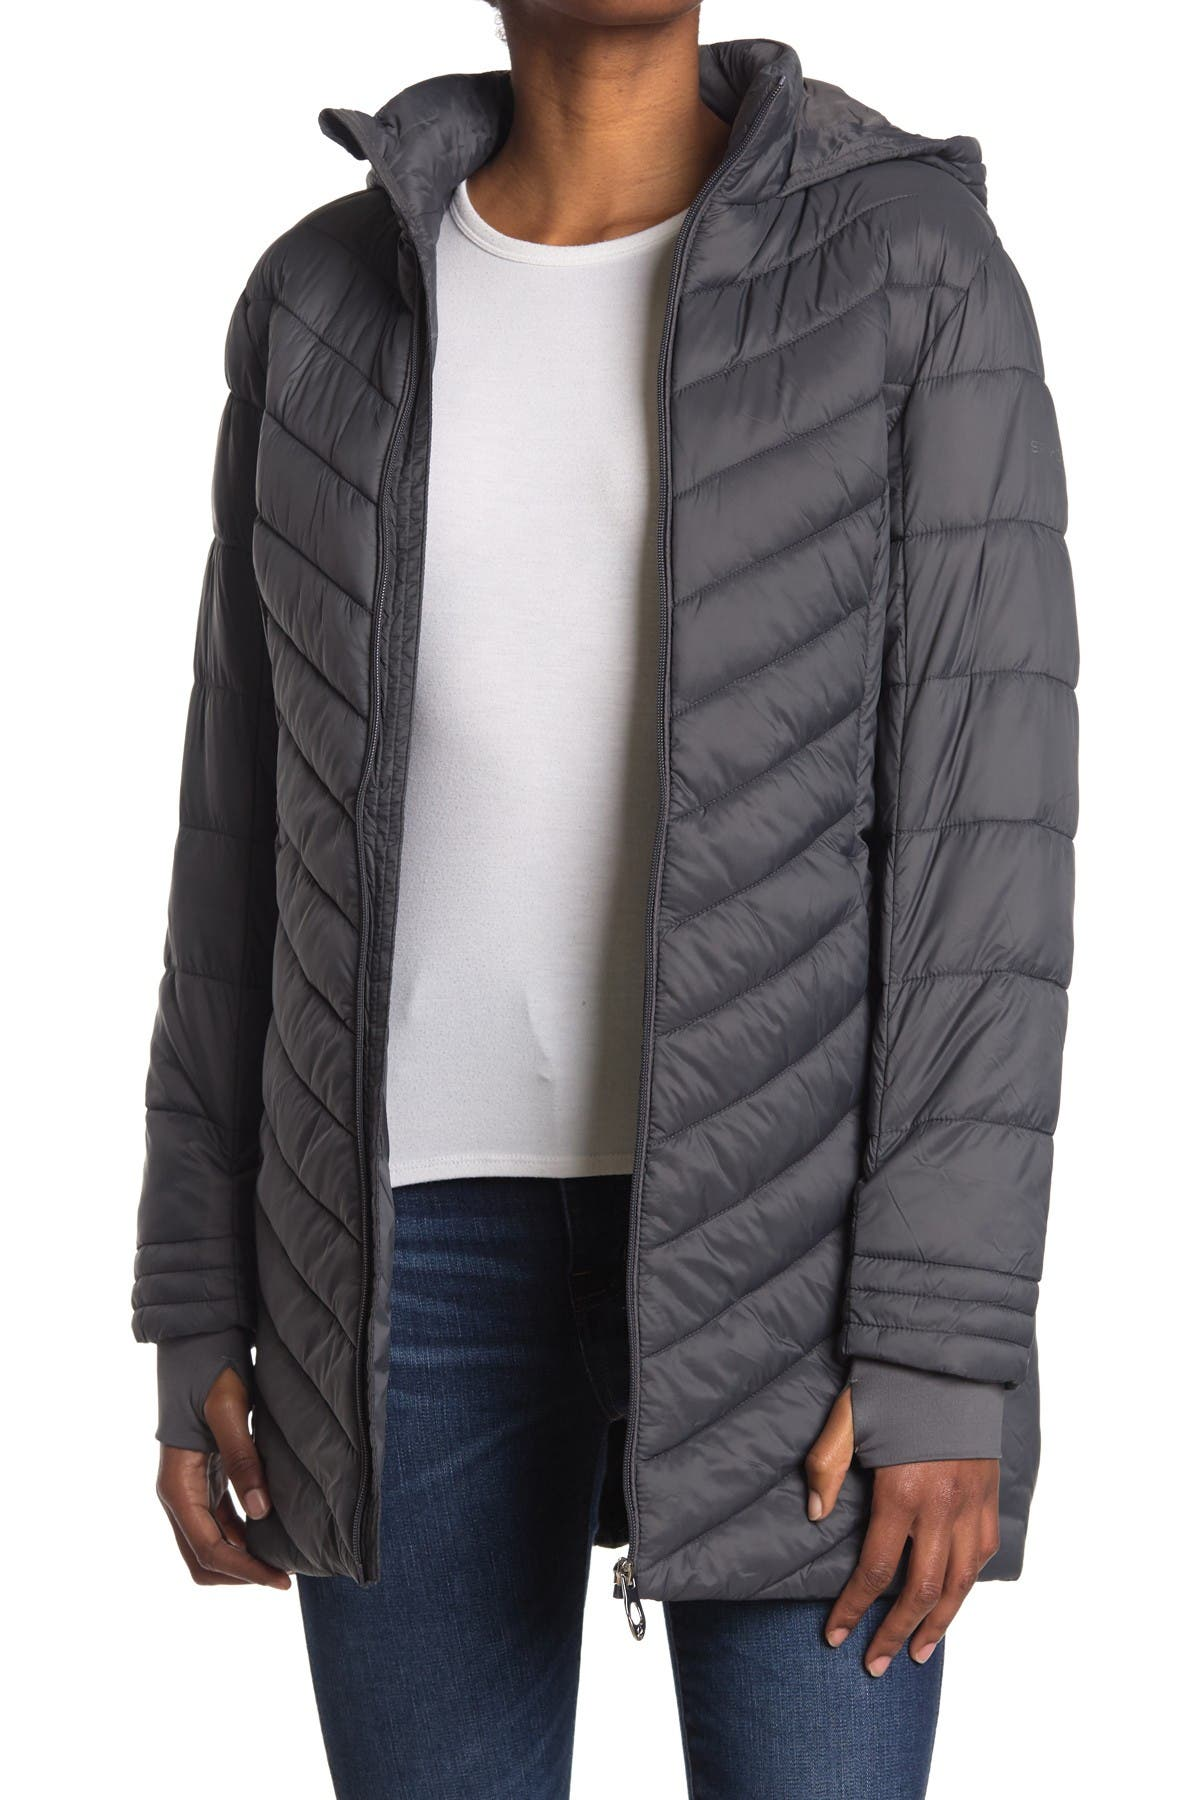 Image of SPYDER Boundless Hooded Long Puffer Jacket